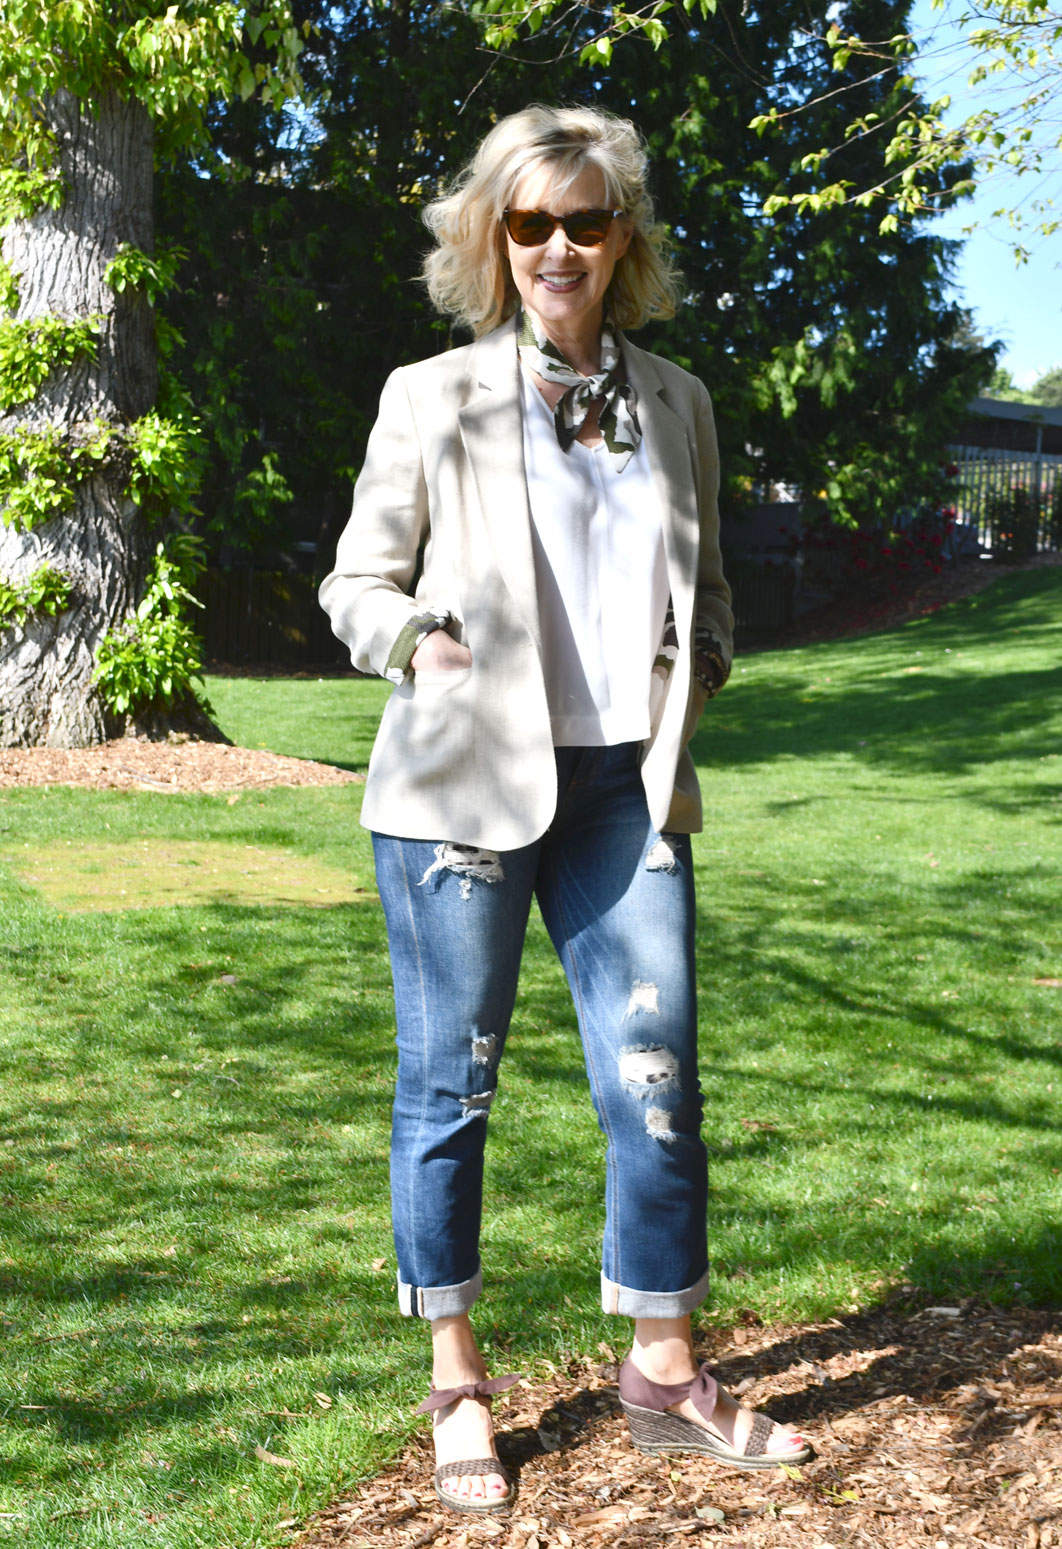 Linen Jasika Blazer paired with jeans and white linen tank—complete outfit.